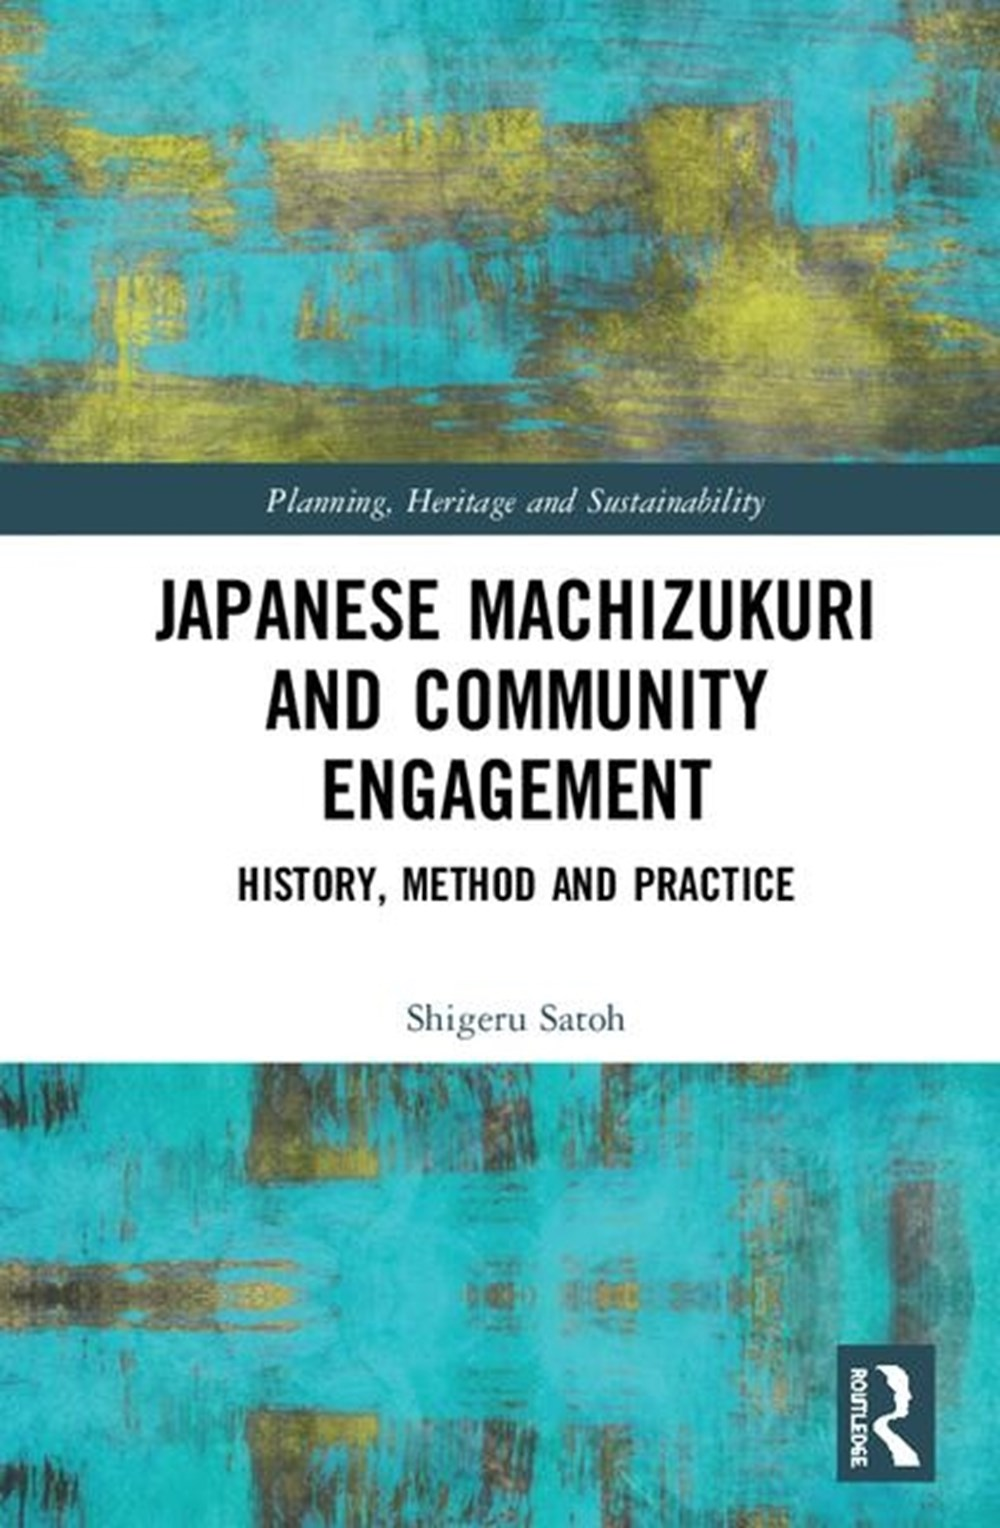 Japanese Machizukuri and Community Engagement History, Method and Practice